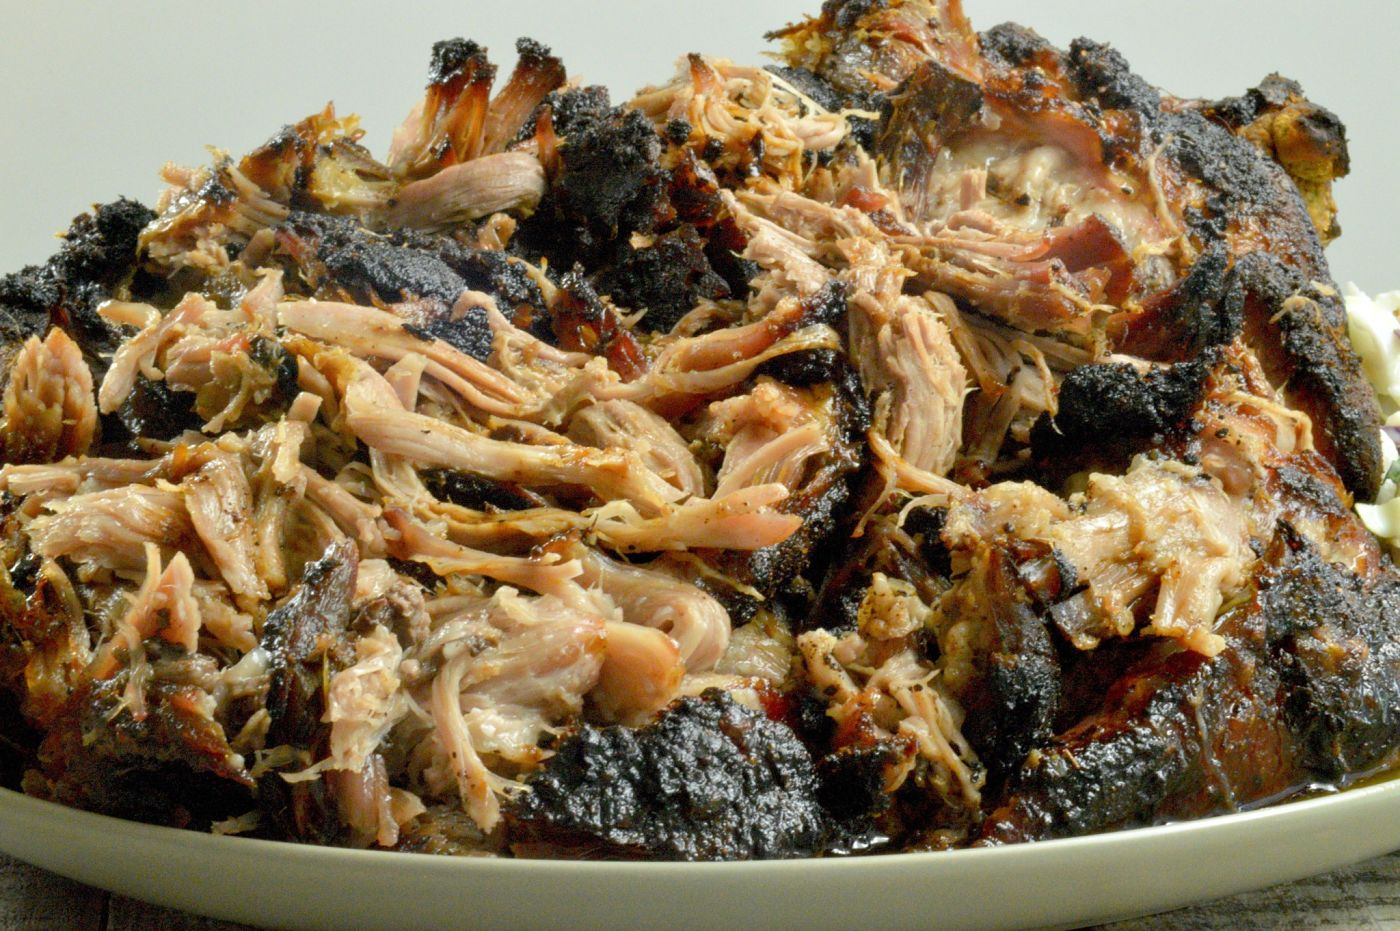 Pulled Pork Roast Shredded with charred edges